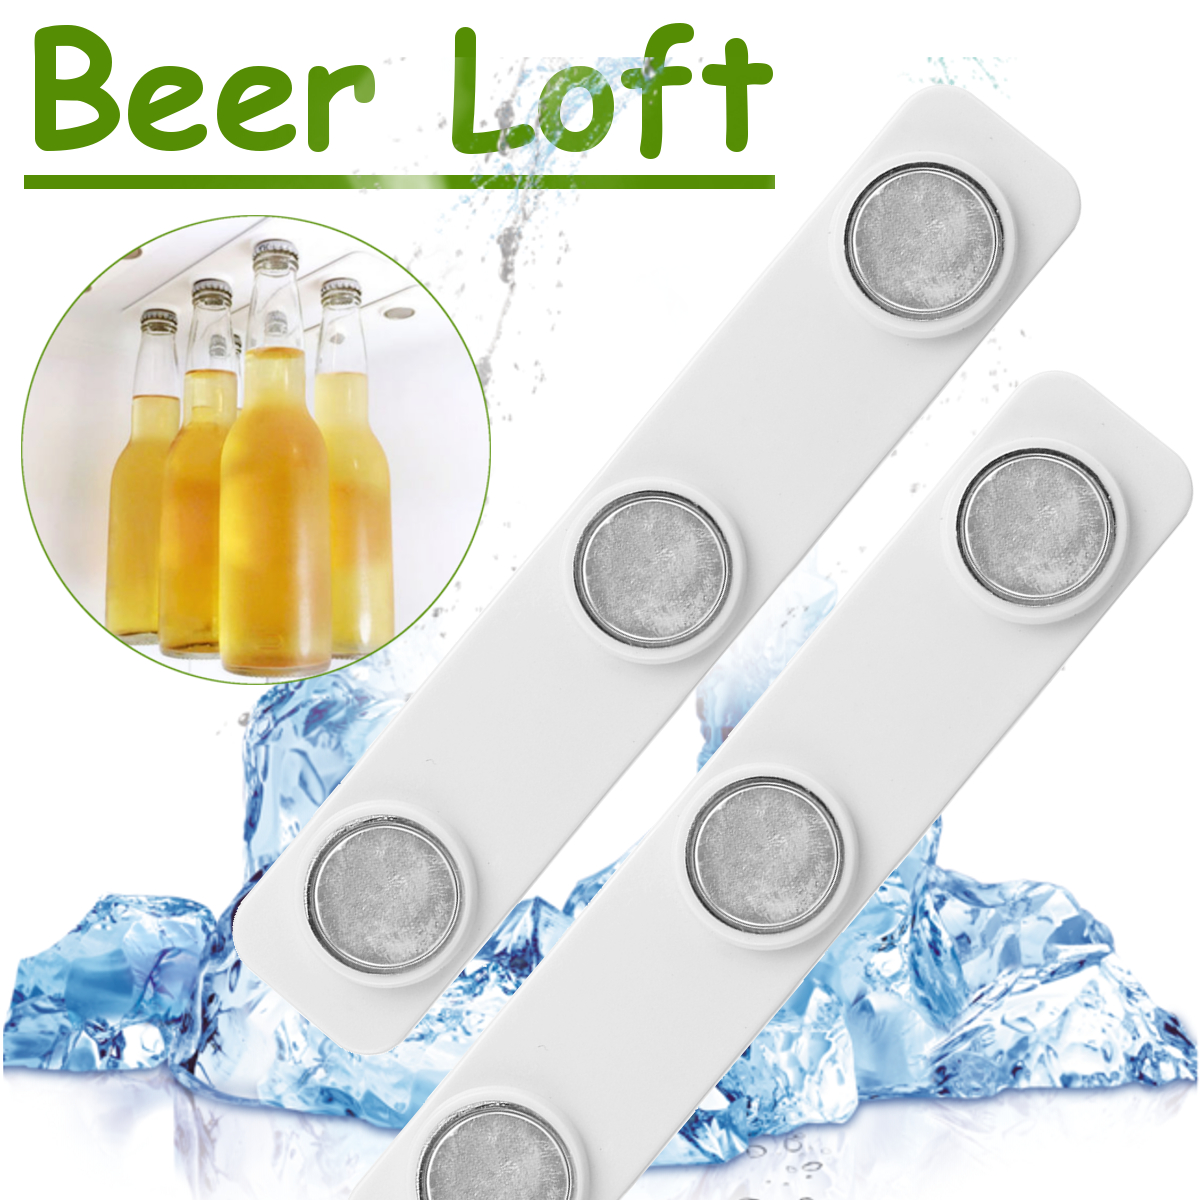 2Pcs Magnetic Bottle Hanger Holder Beer Cocktail Loft Fridge Refrigerator Jars Hanger Holder